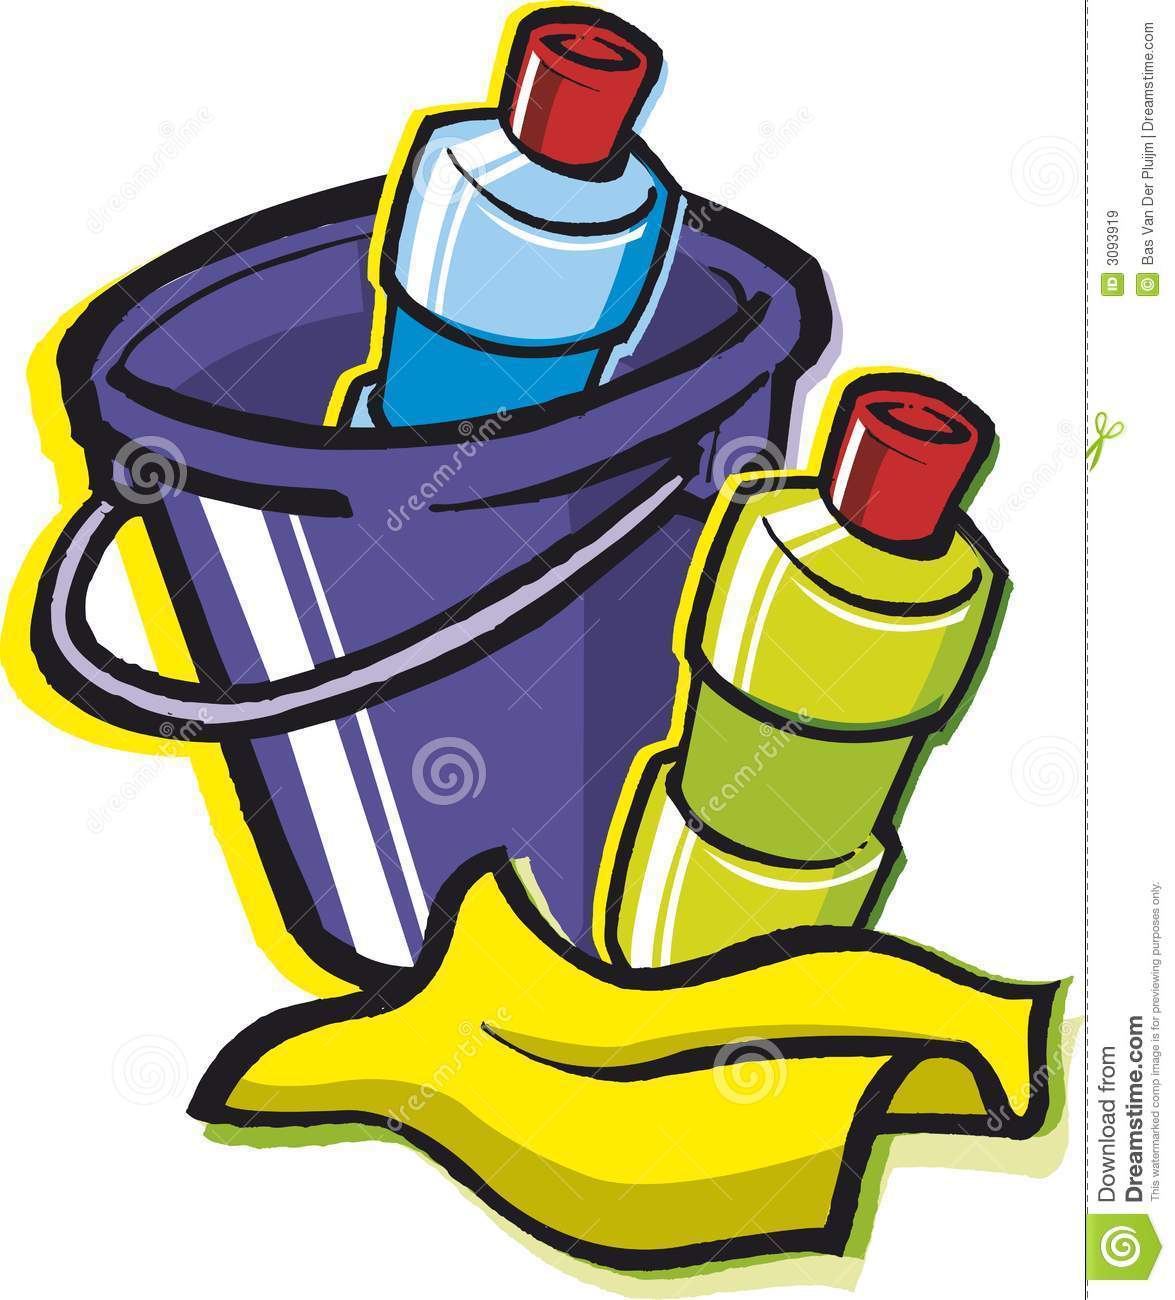 Cleaning Supplies Clipart.